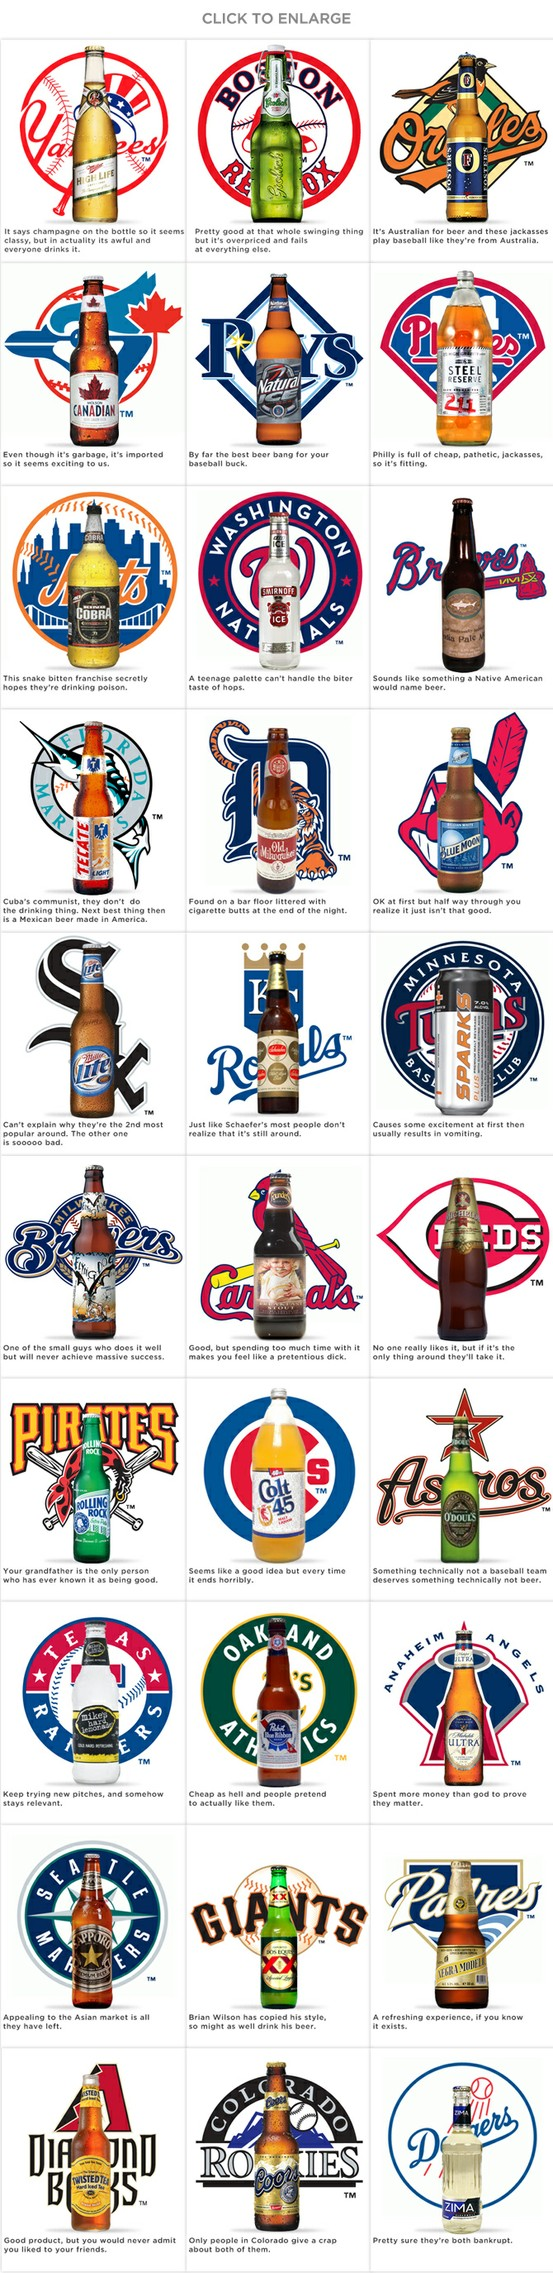 Id go for the BREWERS! LOL